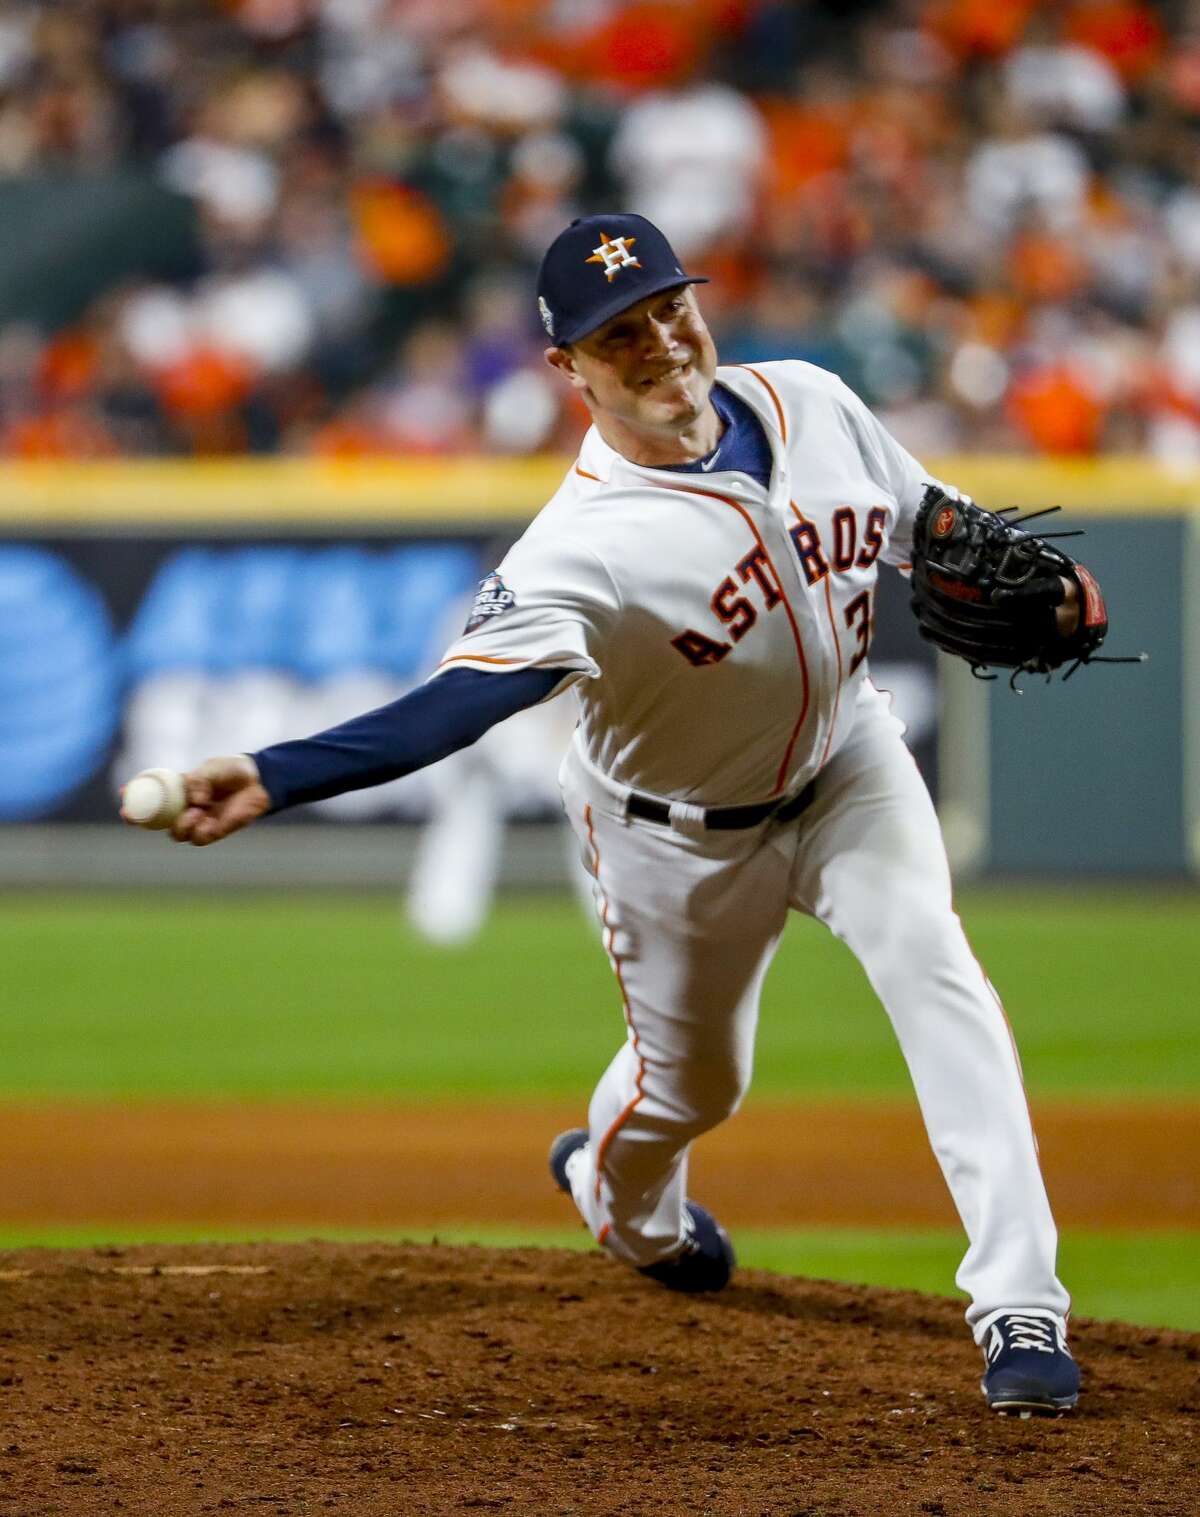 Houston Astros relief pitcher Joe Smith (38) pitches during the ninth inning of Game 1 of the World Series at Minute Maid Park in Houston on Tuesday, Oct. 22, 2019.